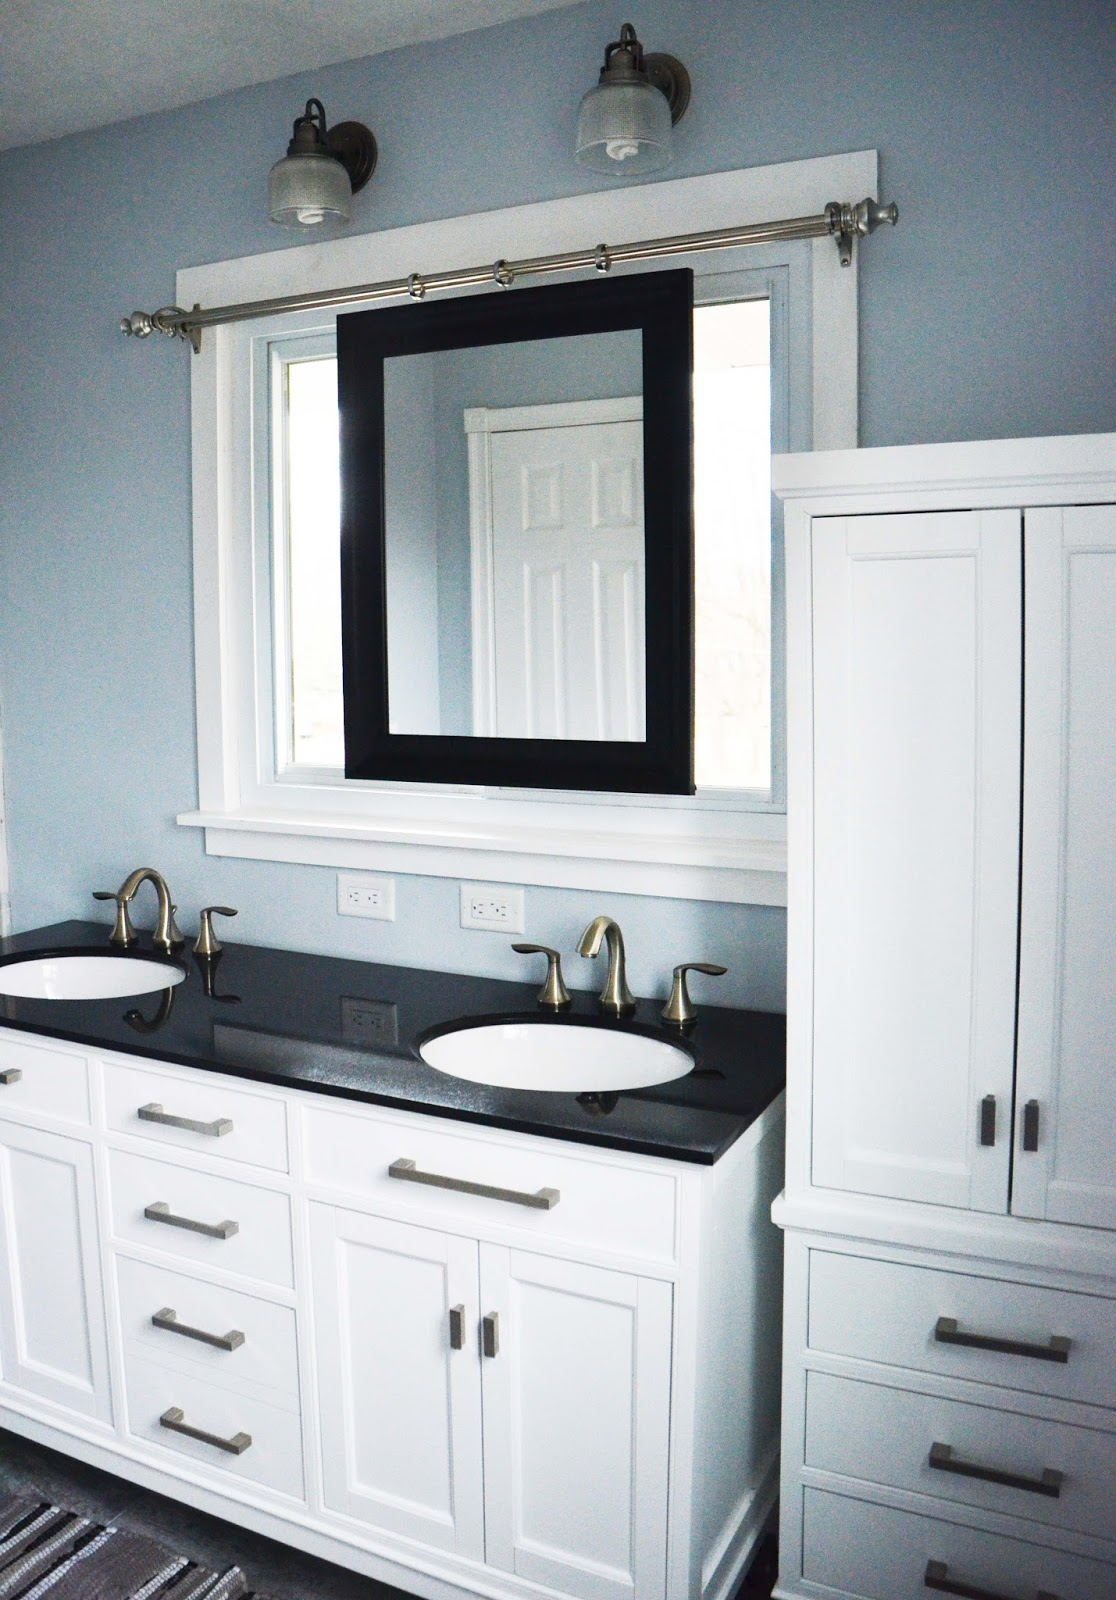 Beautiful Master Bathroom Renovation, White With Dark Countertops, And A  Smart Sliding Mirror Over